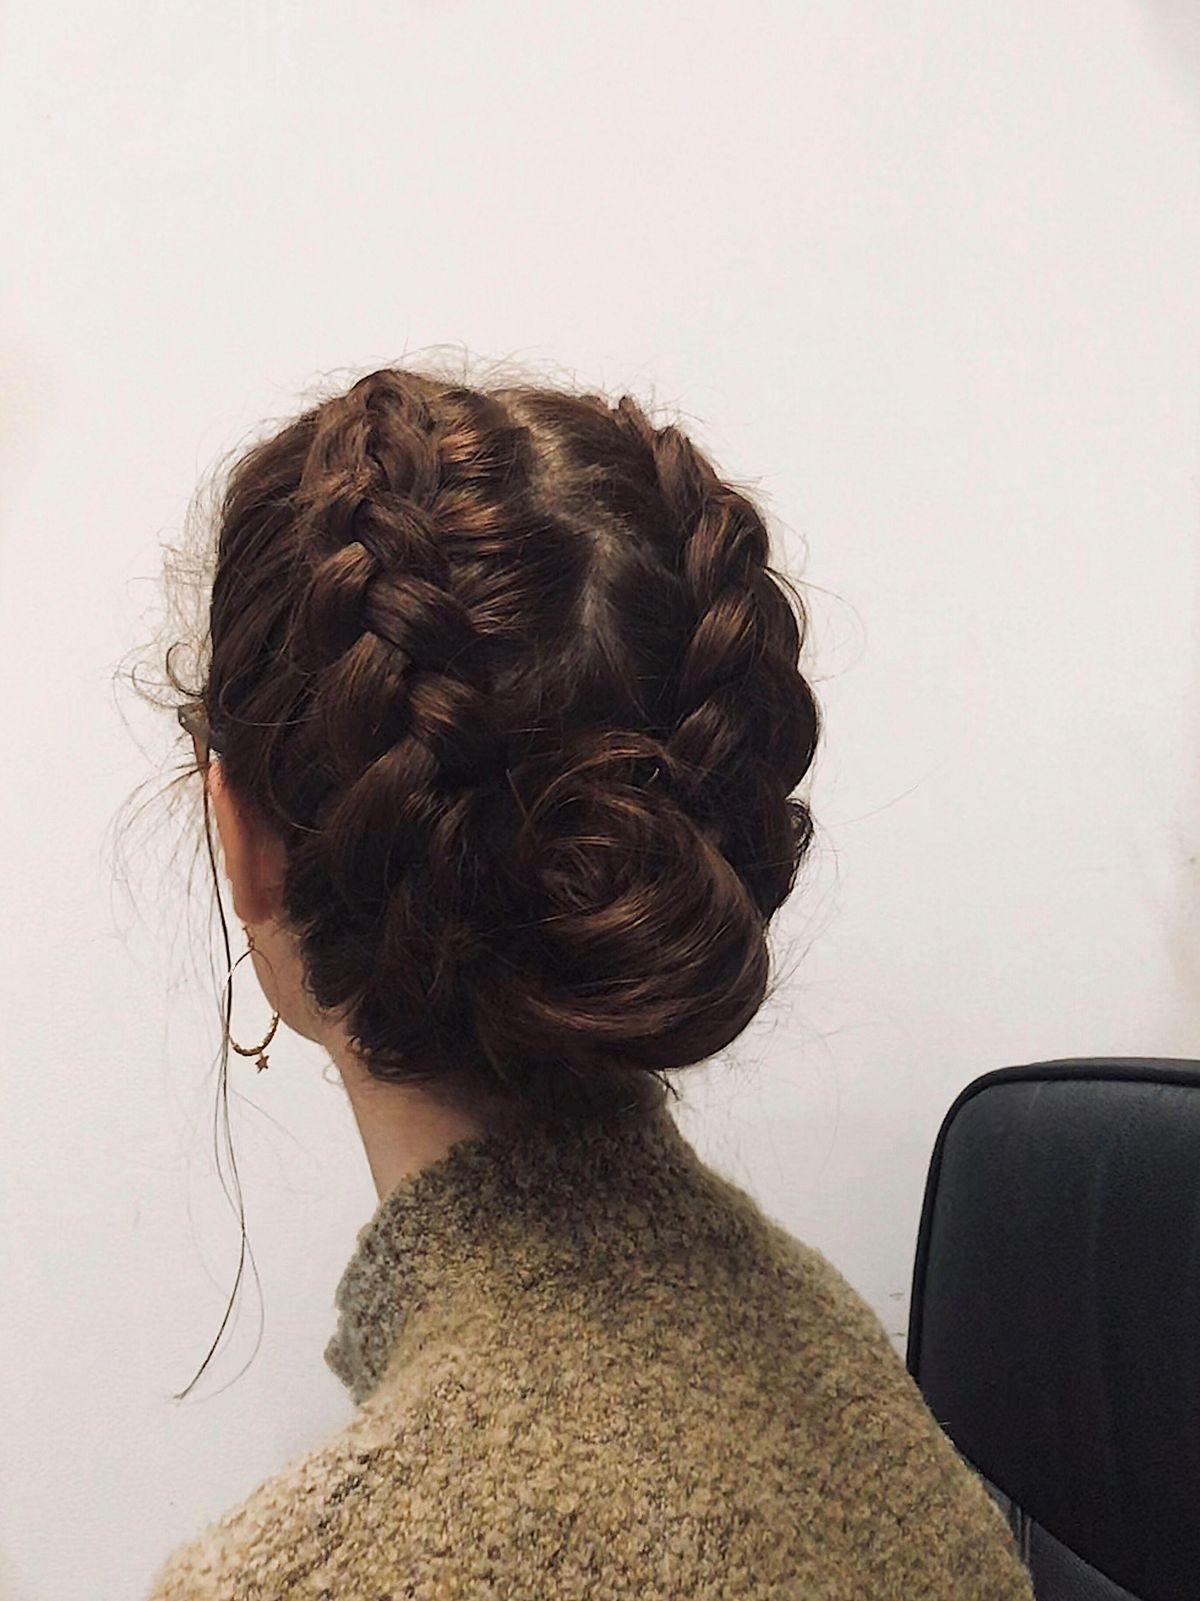 Simple doubledutch braid bun combo for every day hairstyles